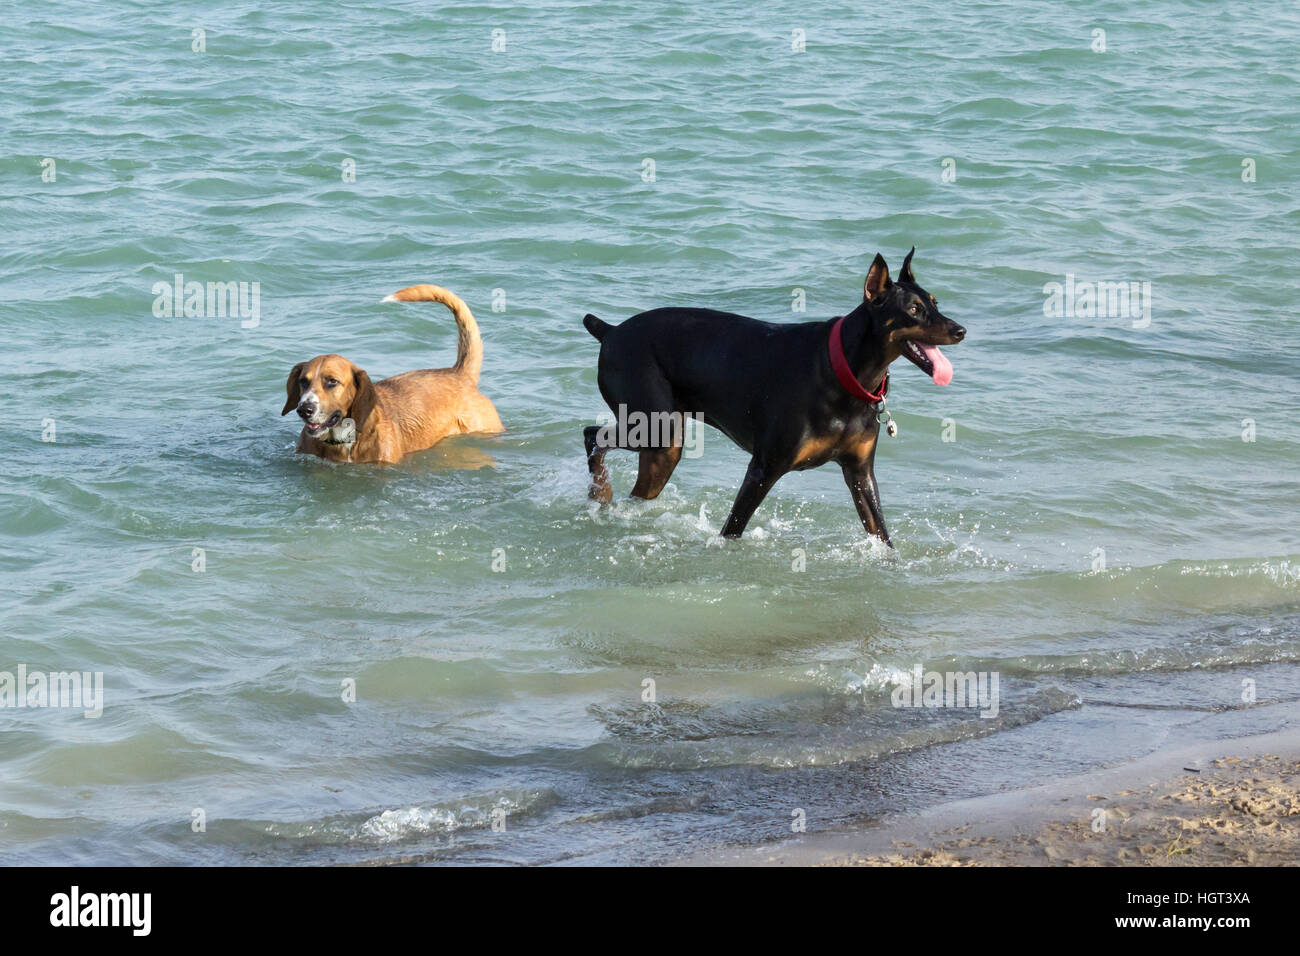 Beagle Corgi mutt cooling off in the waters of a dog park retention pond as his Doberman pal eagerly waits to fetch - Stock Image